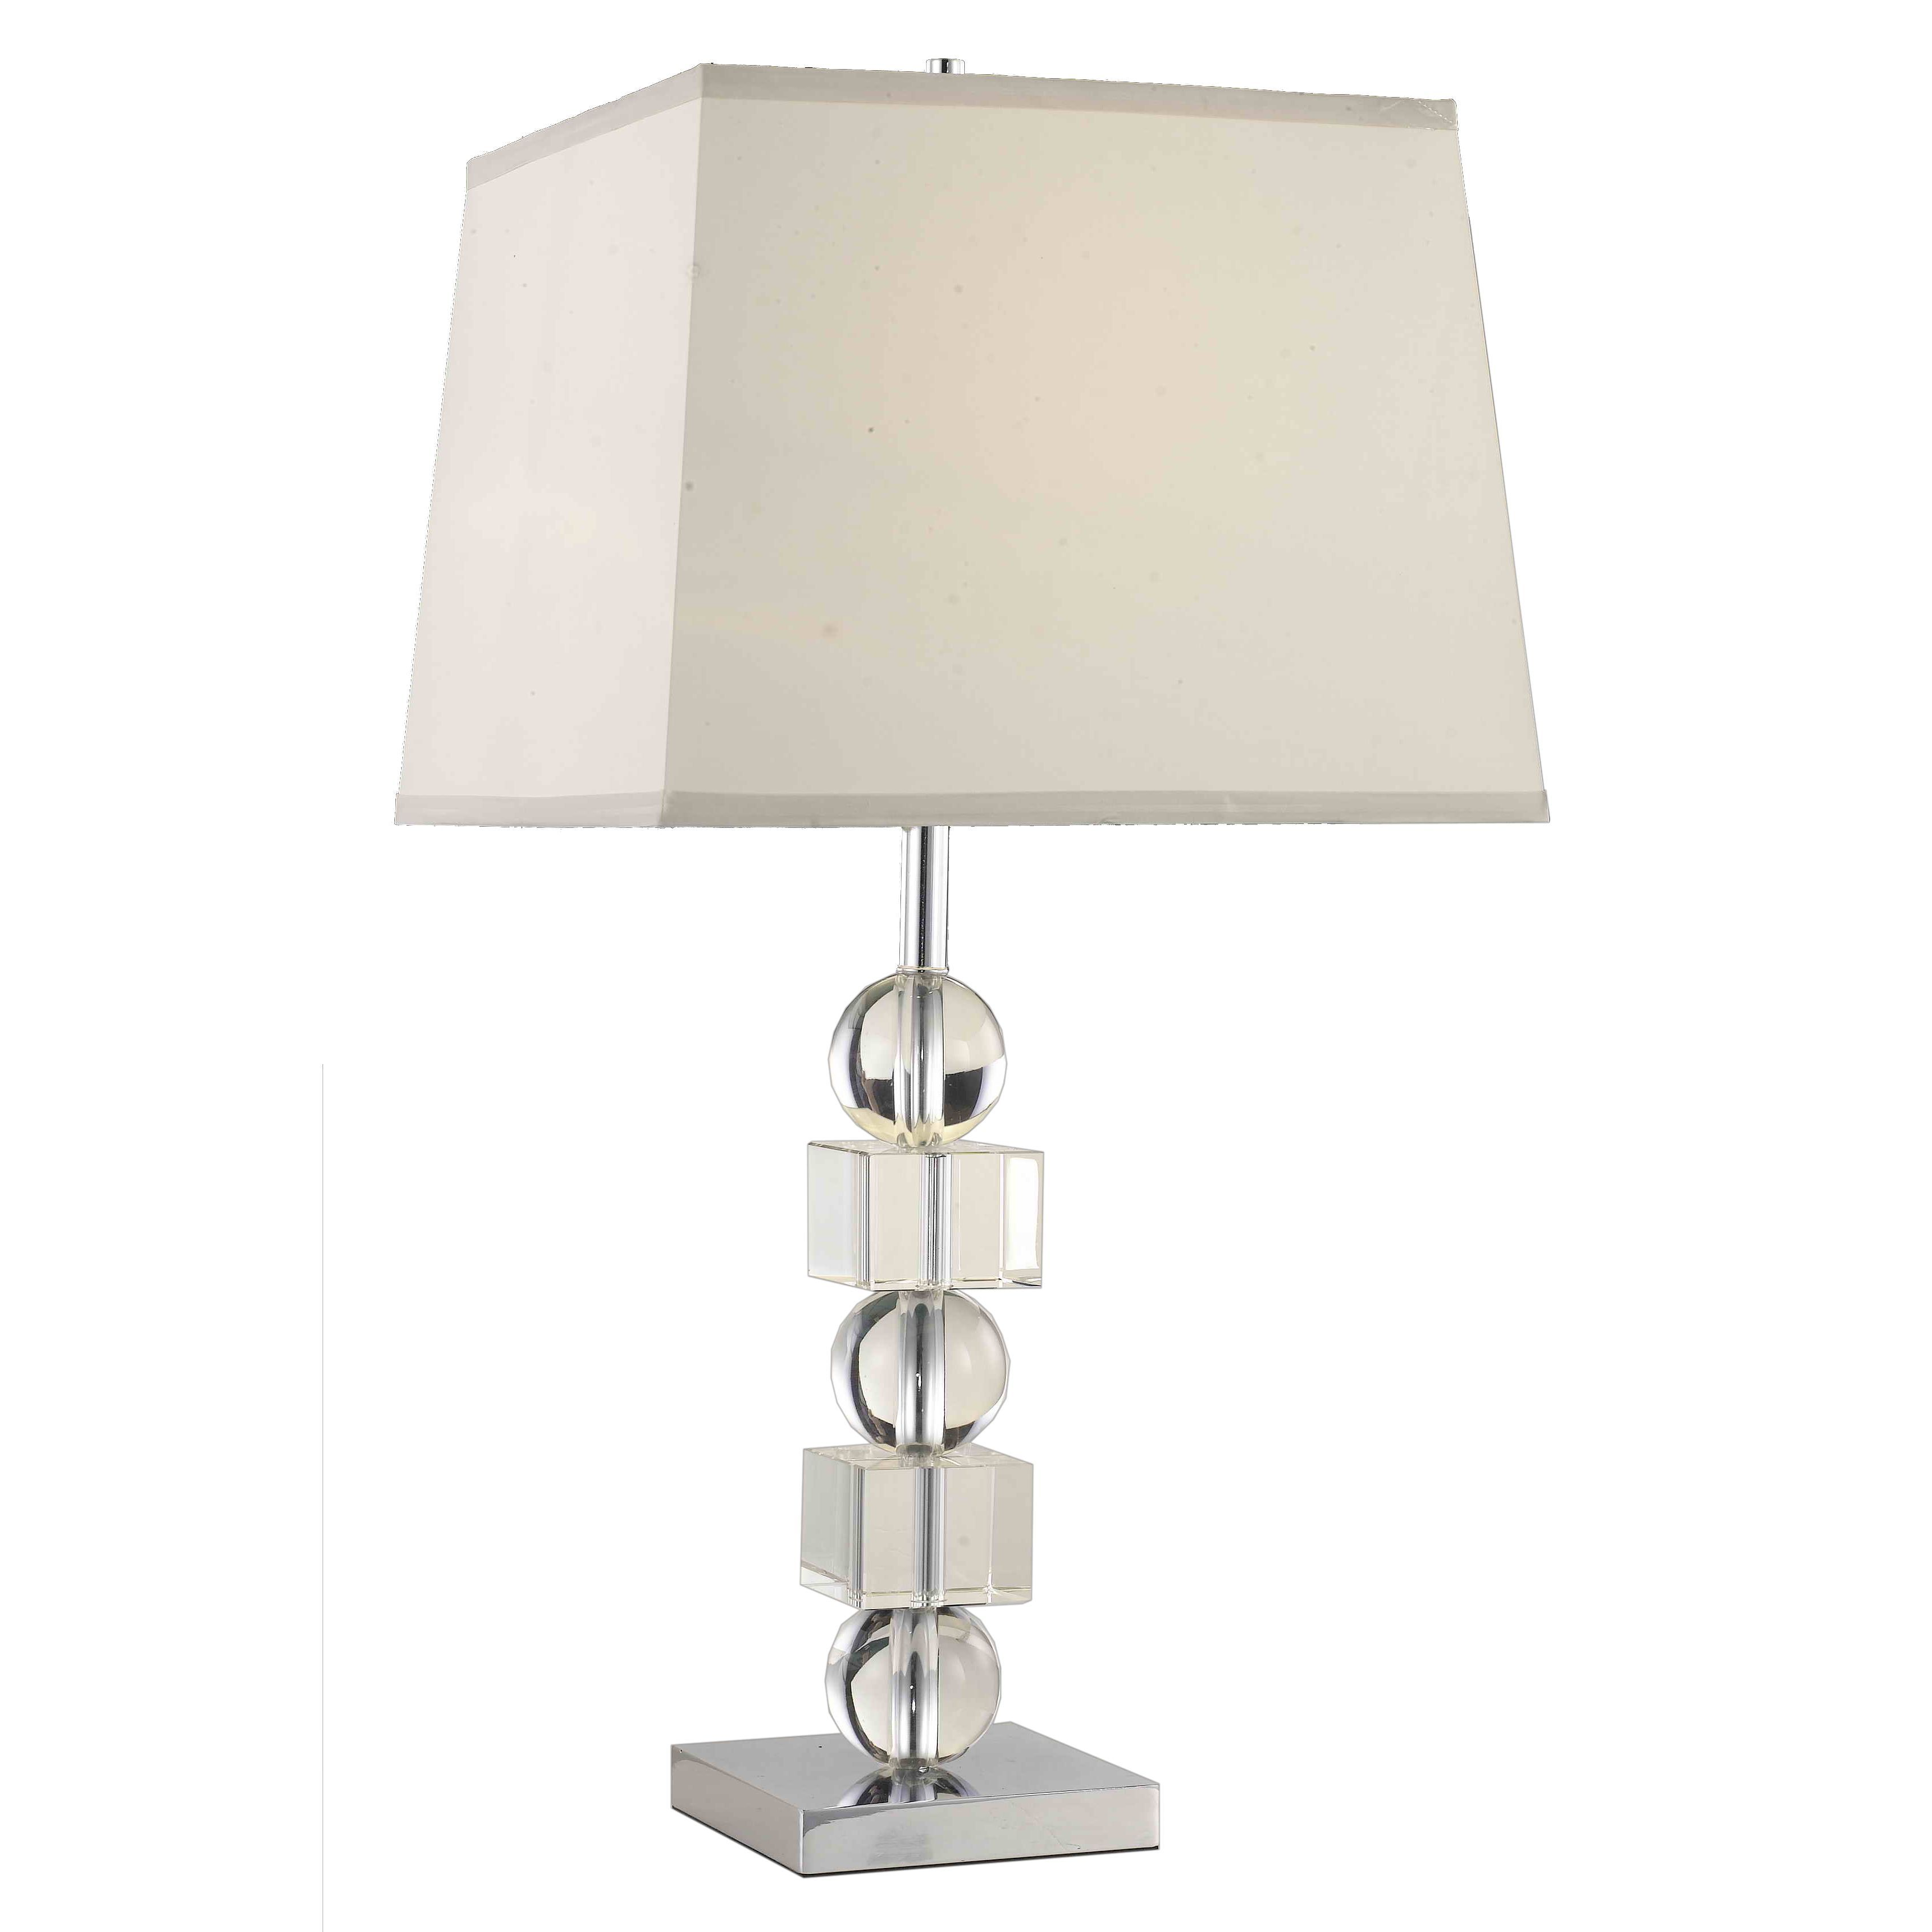 Somette poise stacked crystal table lamp crystal and metal lamp overstock online shopping bedding furniture electronics jewelry clothing more light tablelamp aloadofball Images